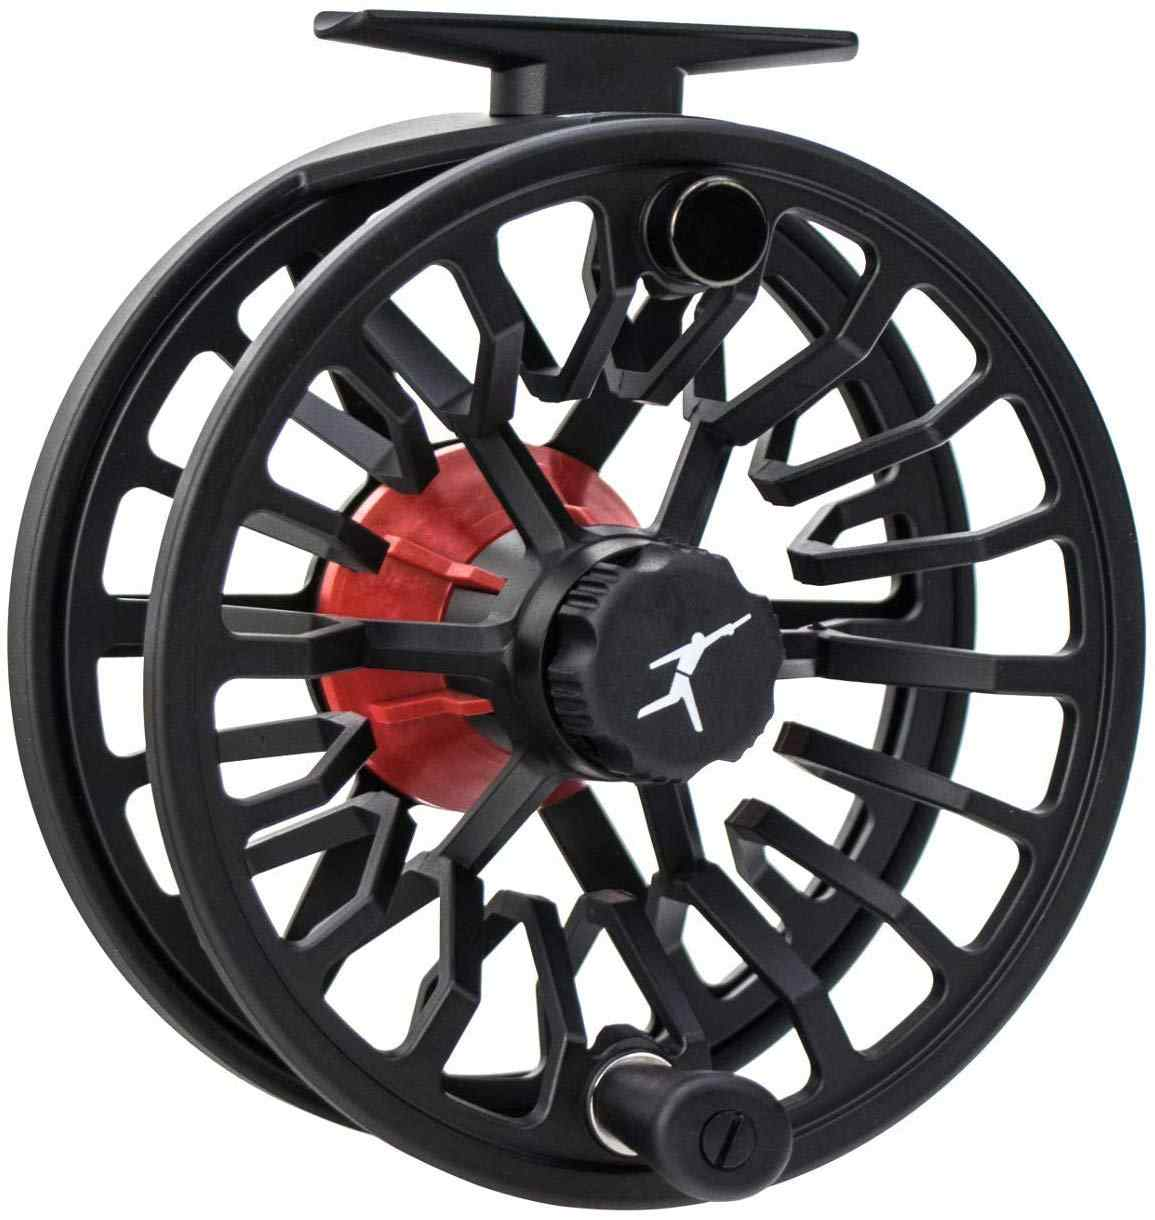 Echo Bravo fly fishing reels